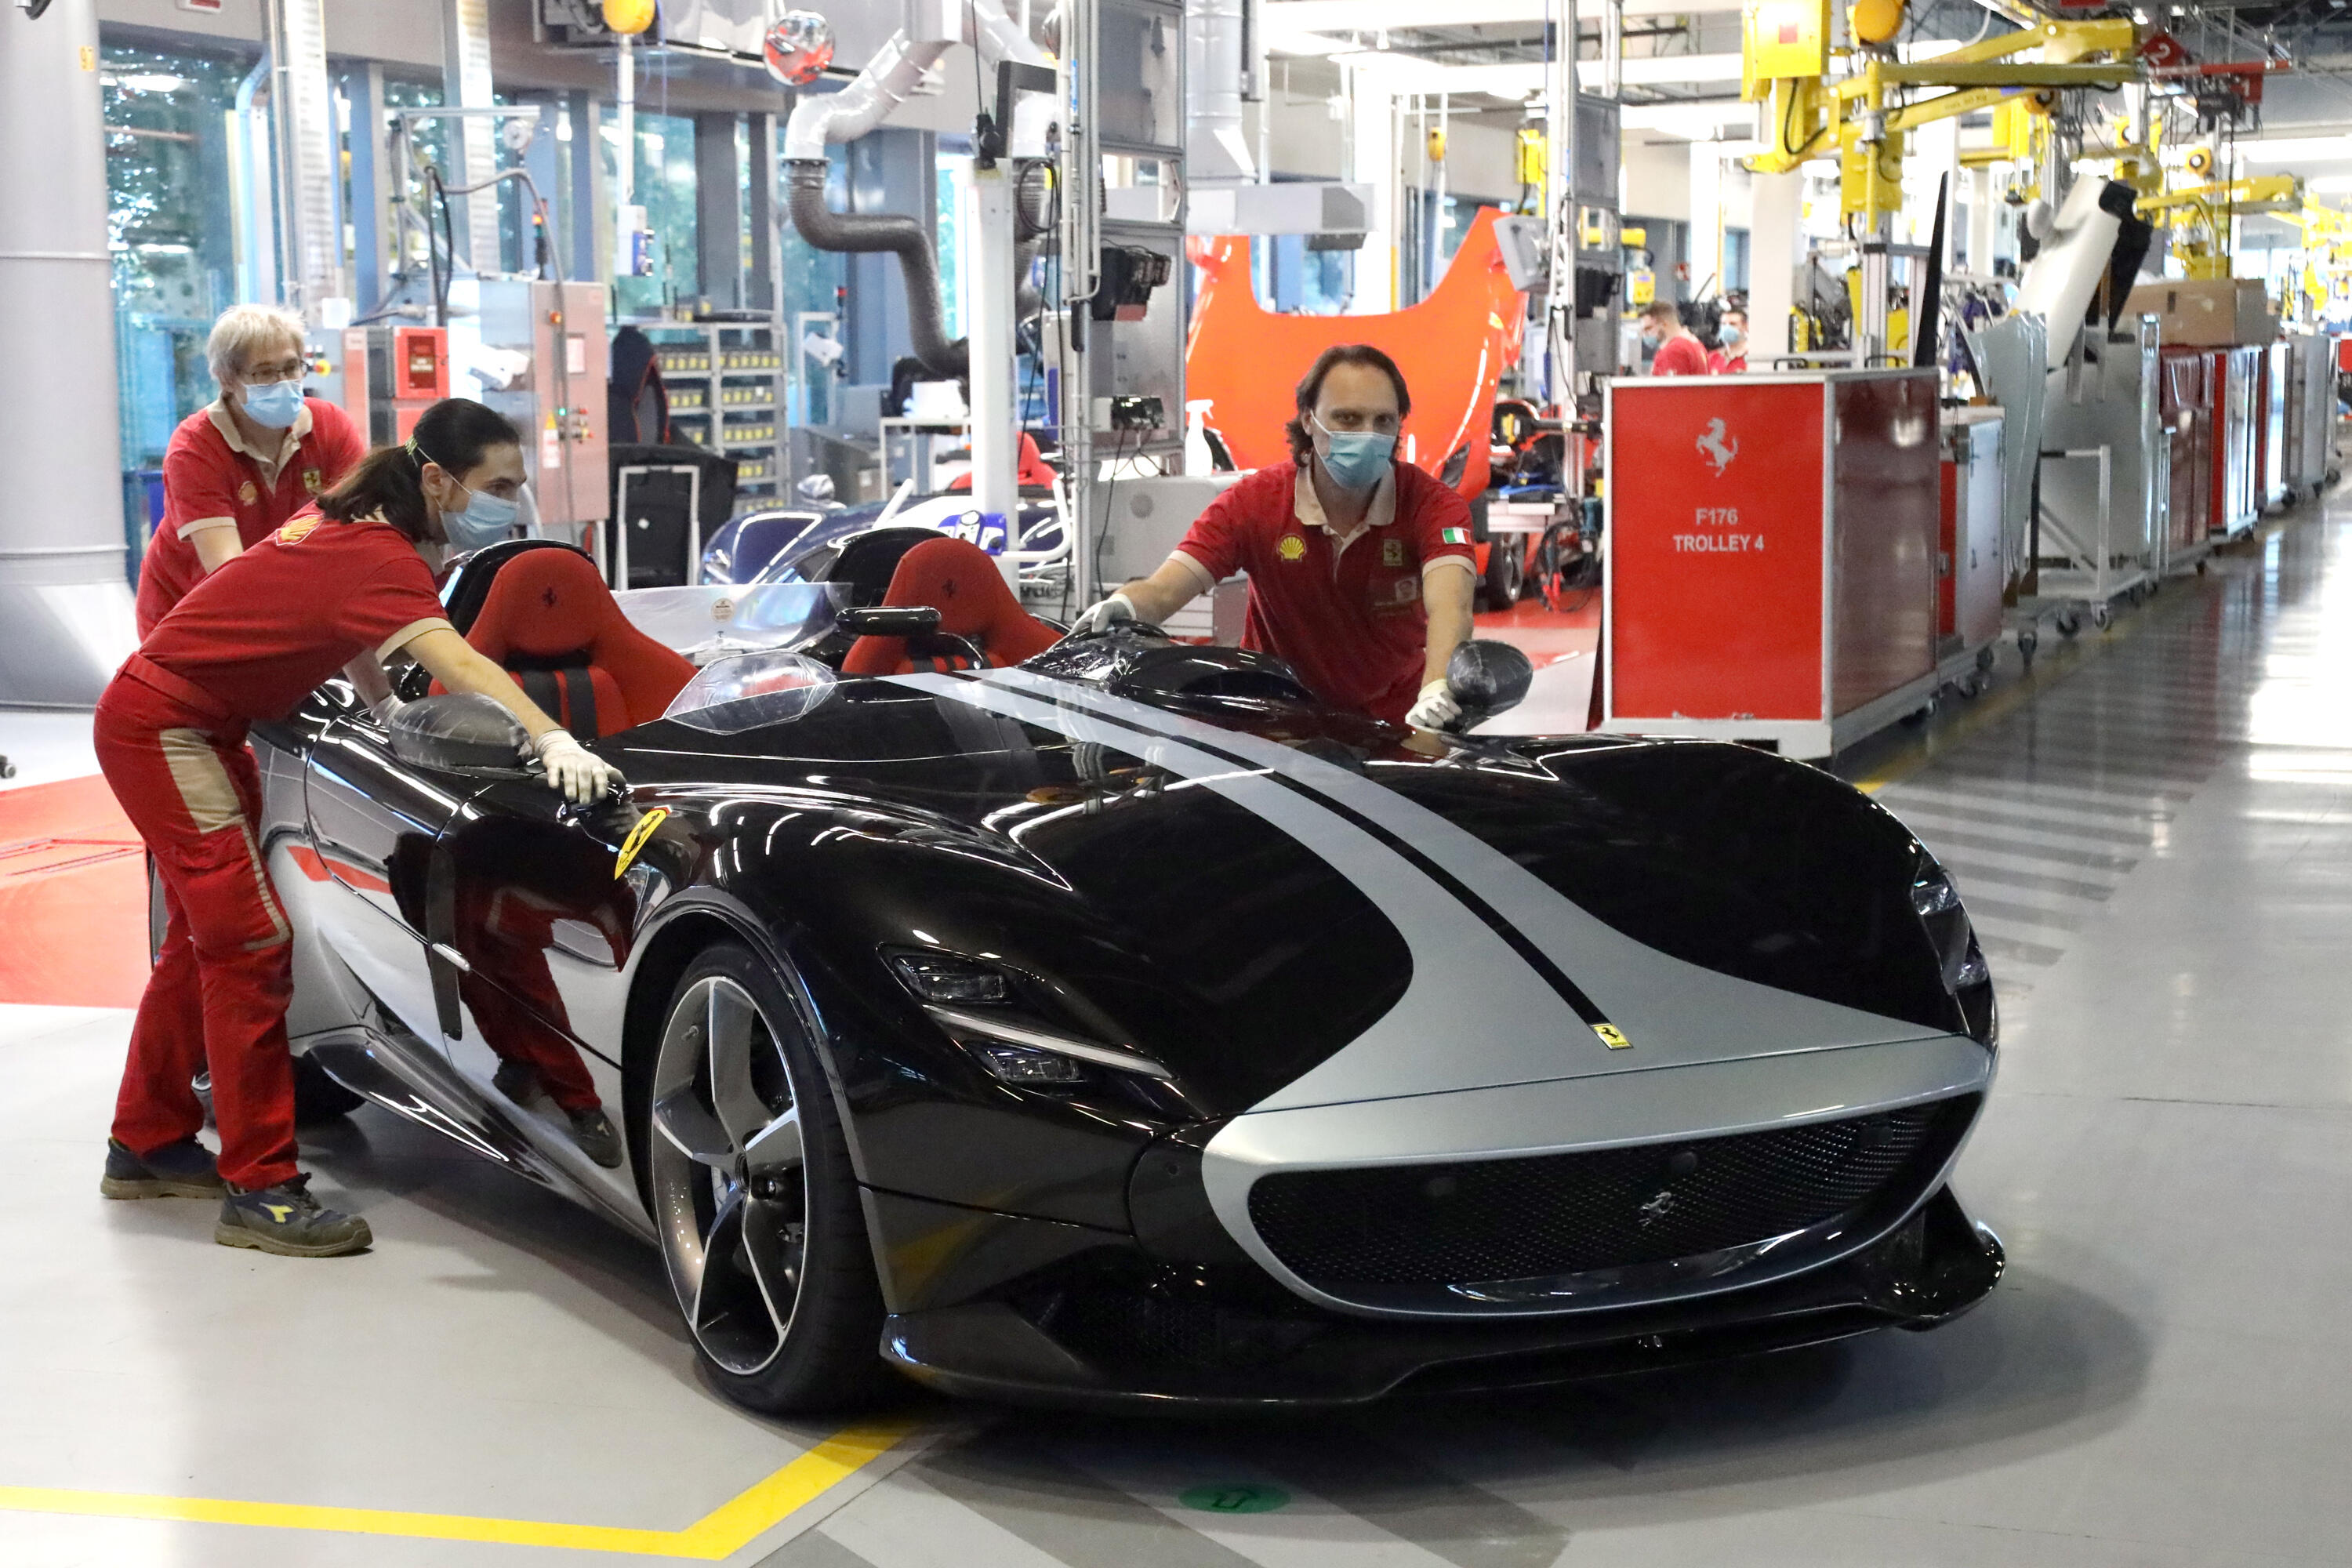 Ferrari Monza SP2 production